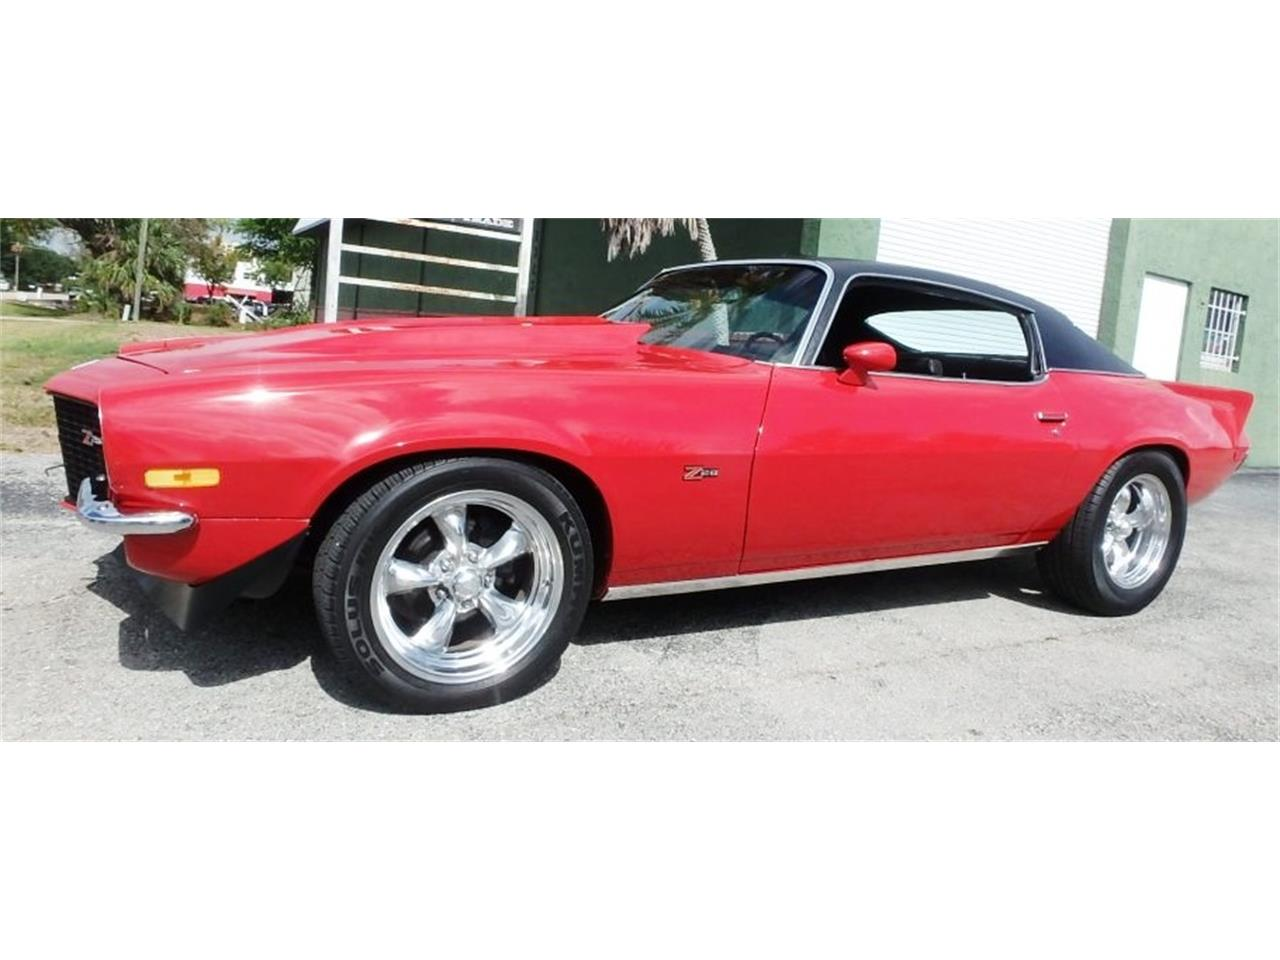 Large Picture of '70 Camaro located in POMPANO BEACH Florida - $24,995.00 Offered by Cool Cars - NAPL